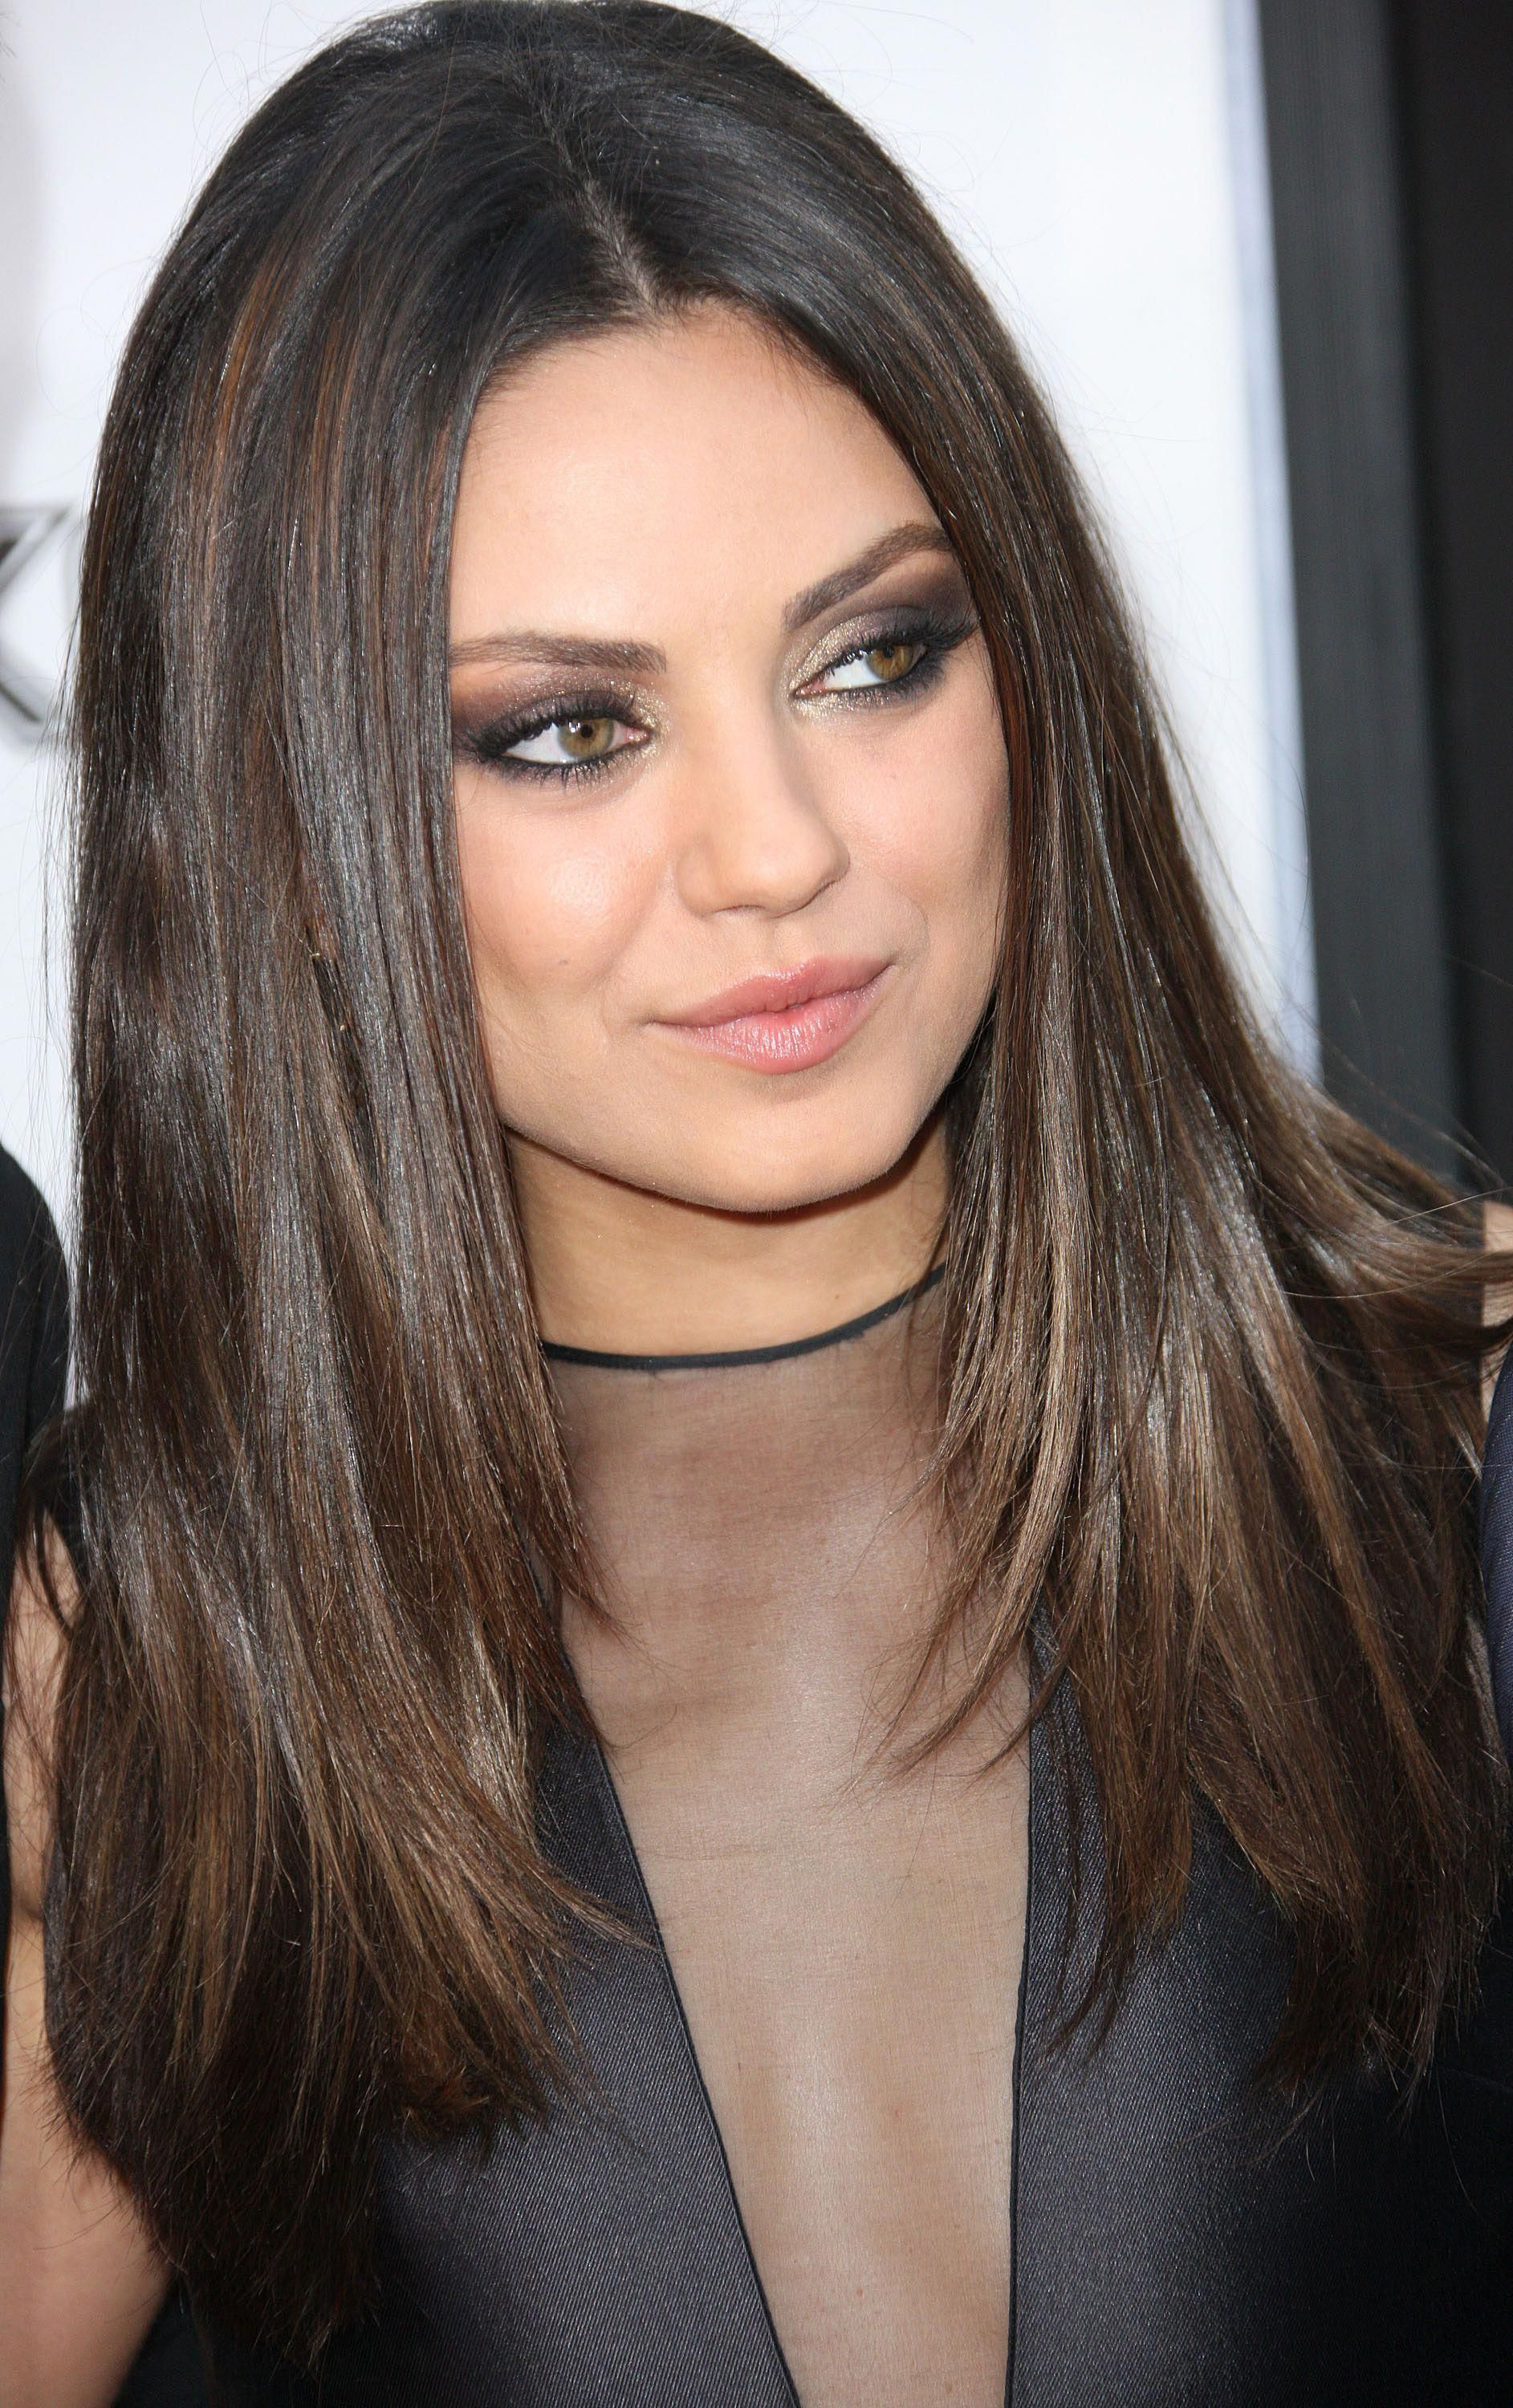 Long Angles Hairstyles Hairstyles For Round Faces The 20 Most